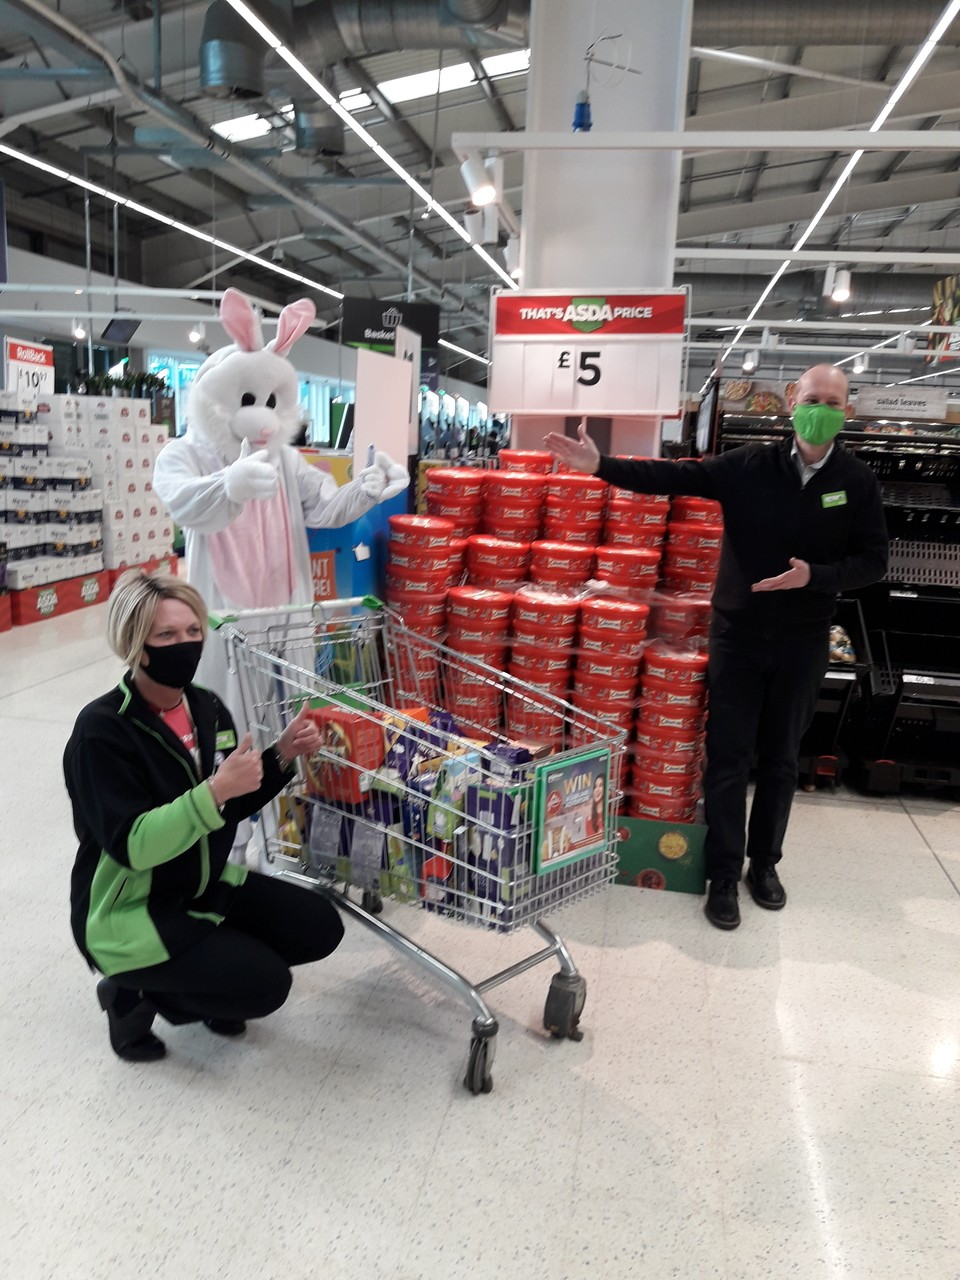 Our last donation of Easter Eggs for the doctors and nurses of UHCW 👍💯 | Asda Coventry